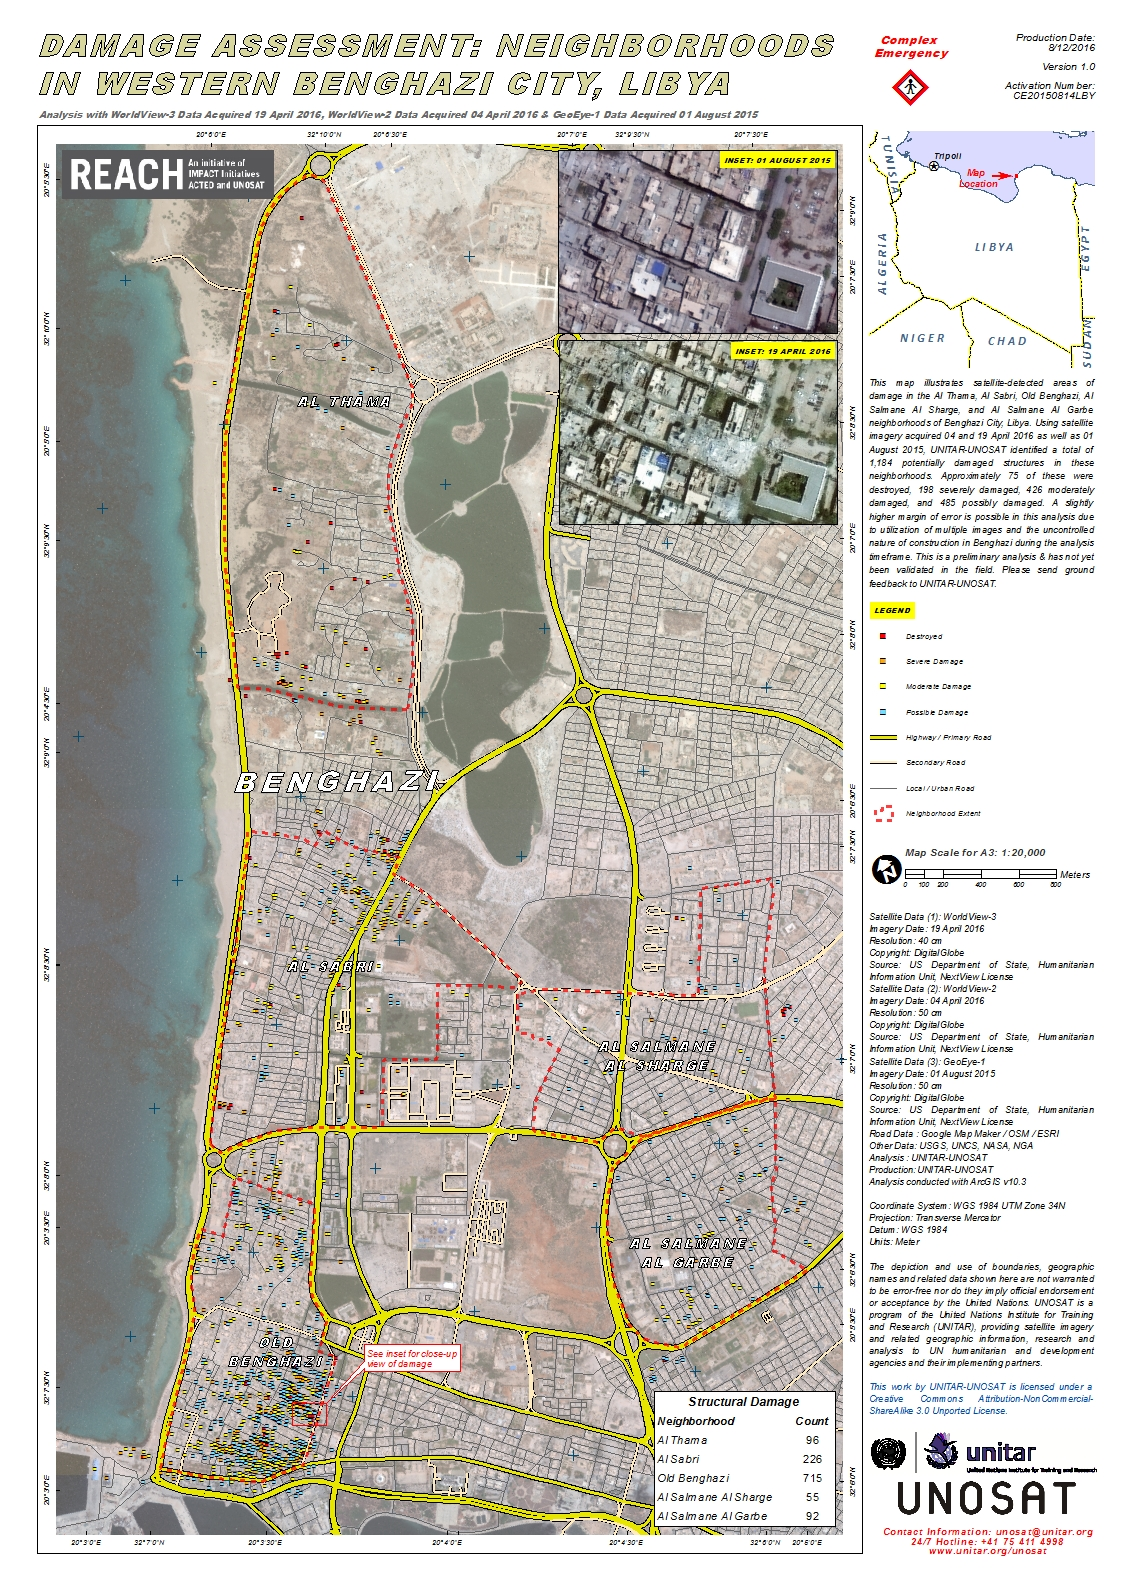 Damage Assessment Neighborhoods in Western Benghazi City Libya